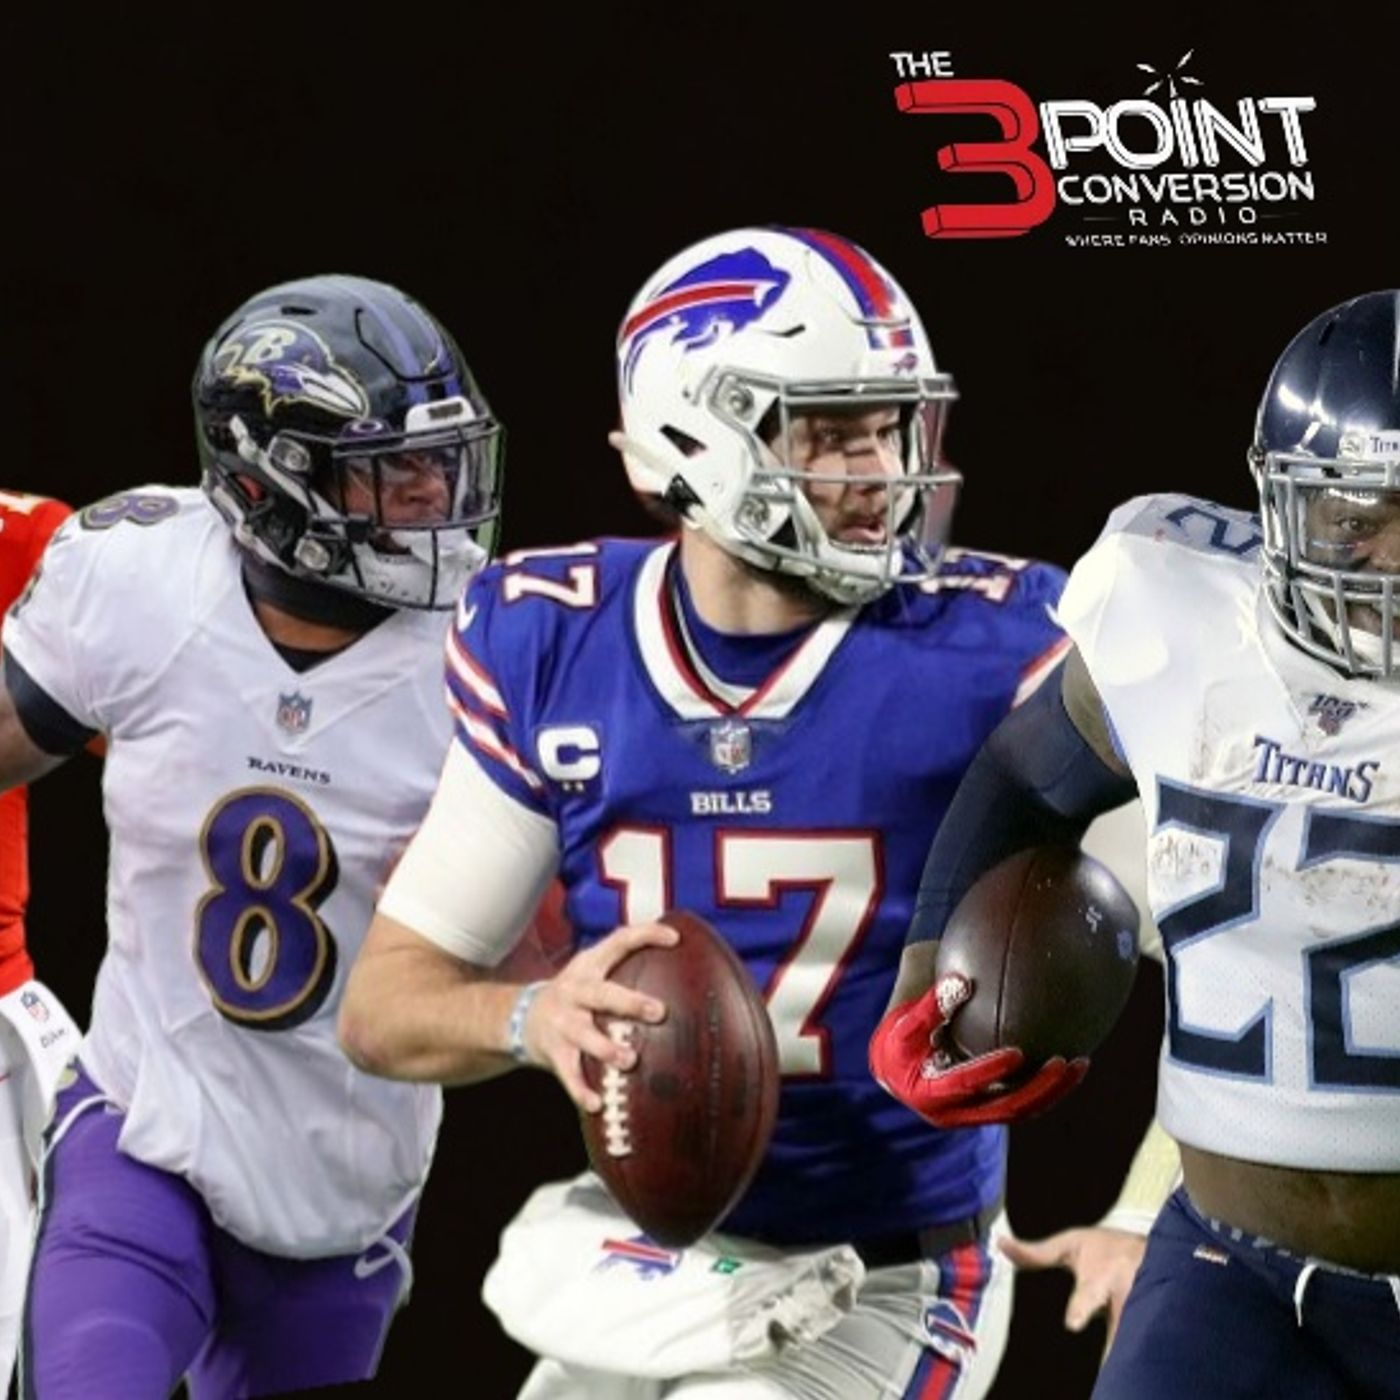 The 3 Point Conversion Sports Lounge - CFB Alliance Affect, Fantasy Football Gems, NFL (AFC) Preview, Did Yankees Peak Too Soon